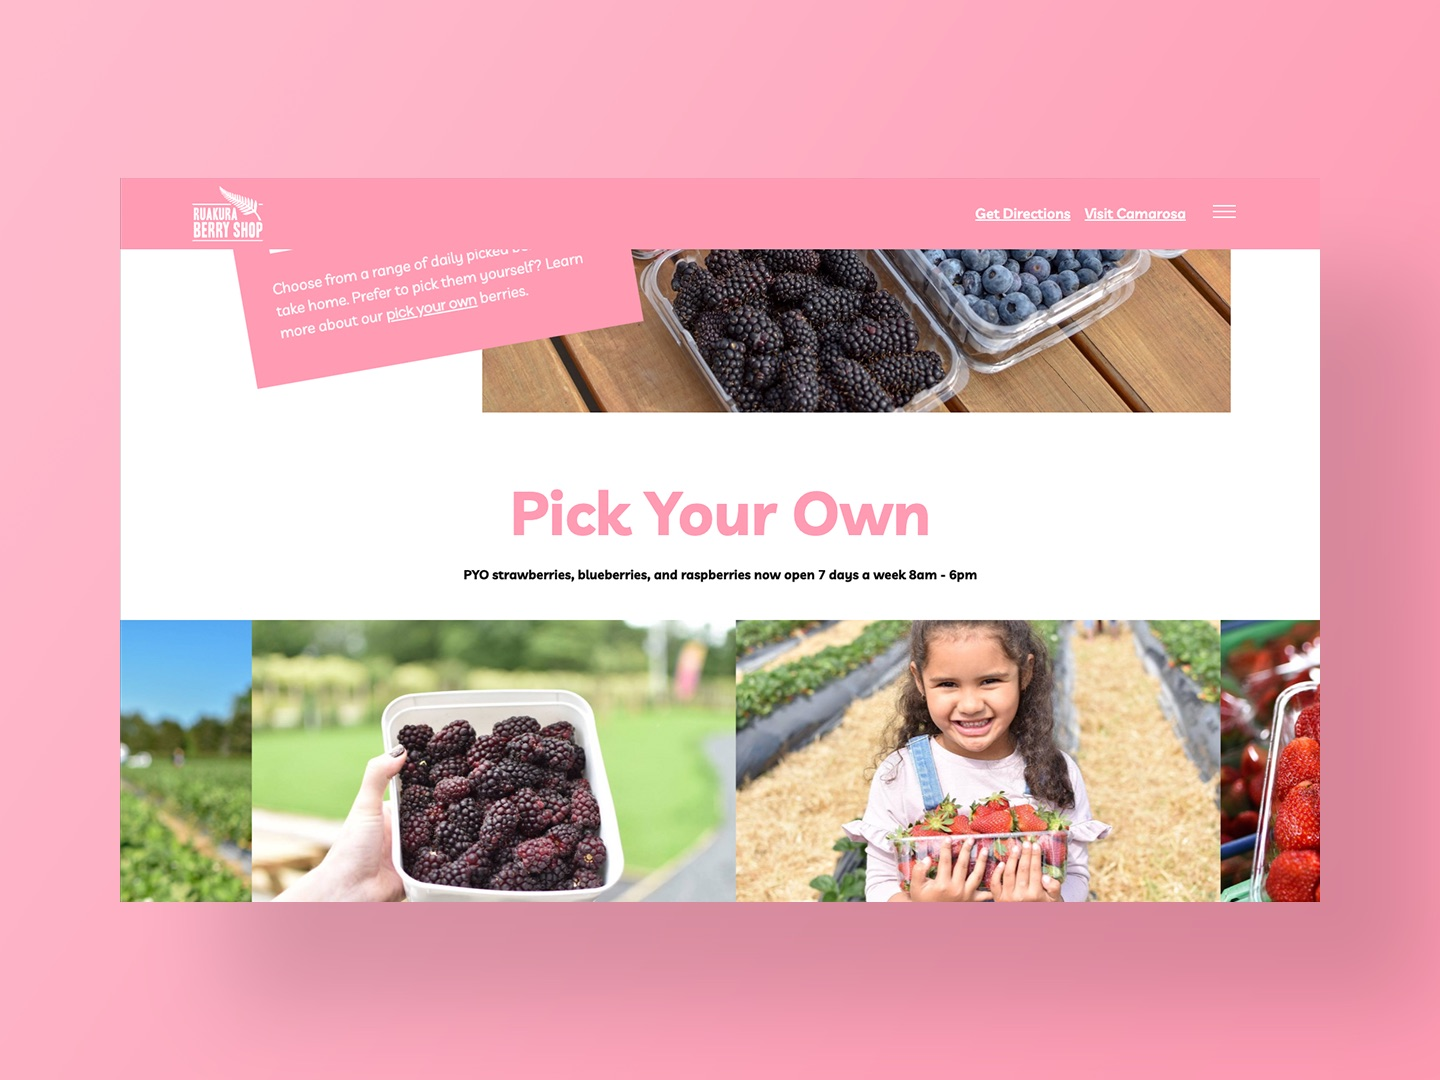 Ruakura Berry Shop Website Design by Neon Hive